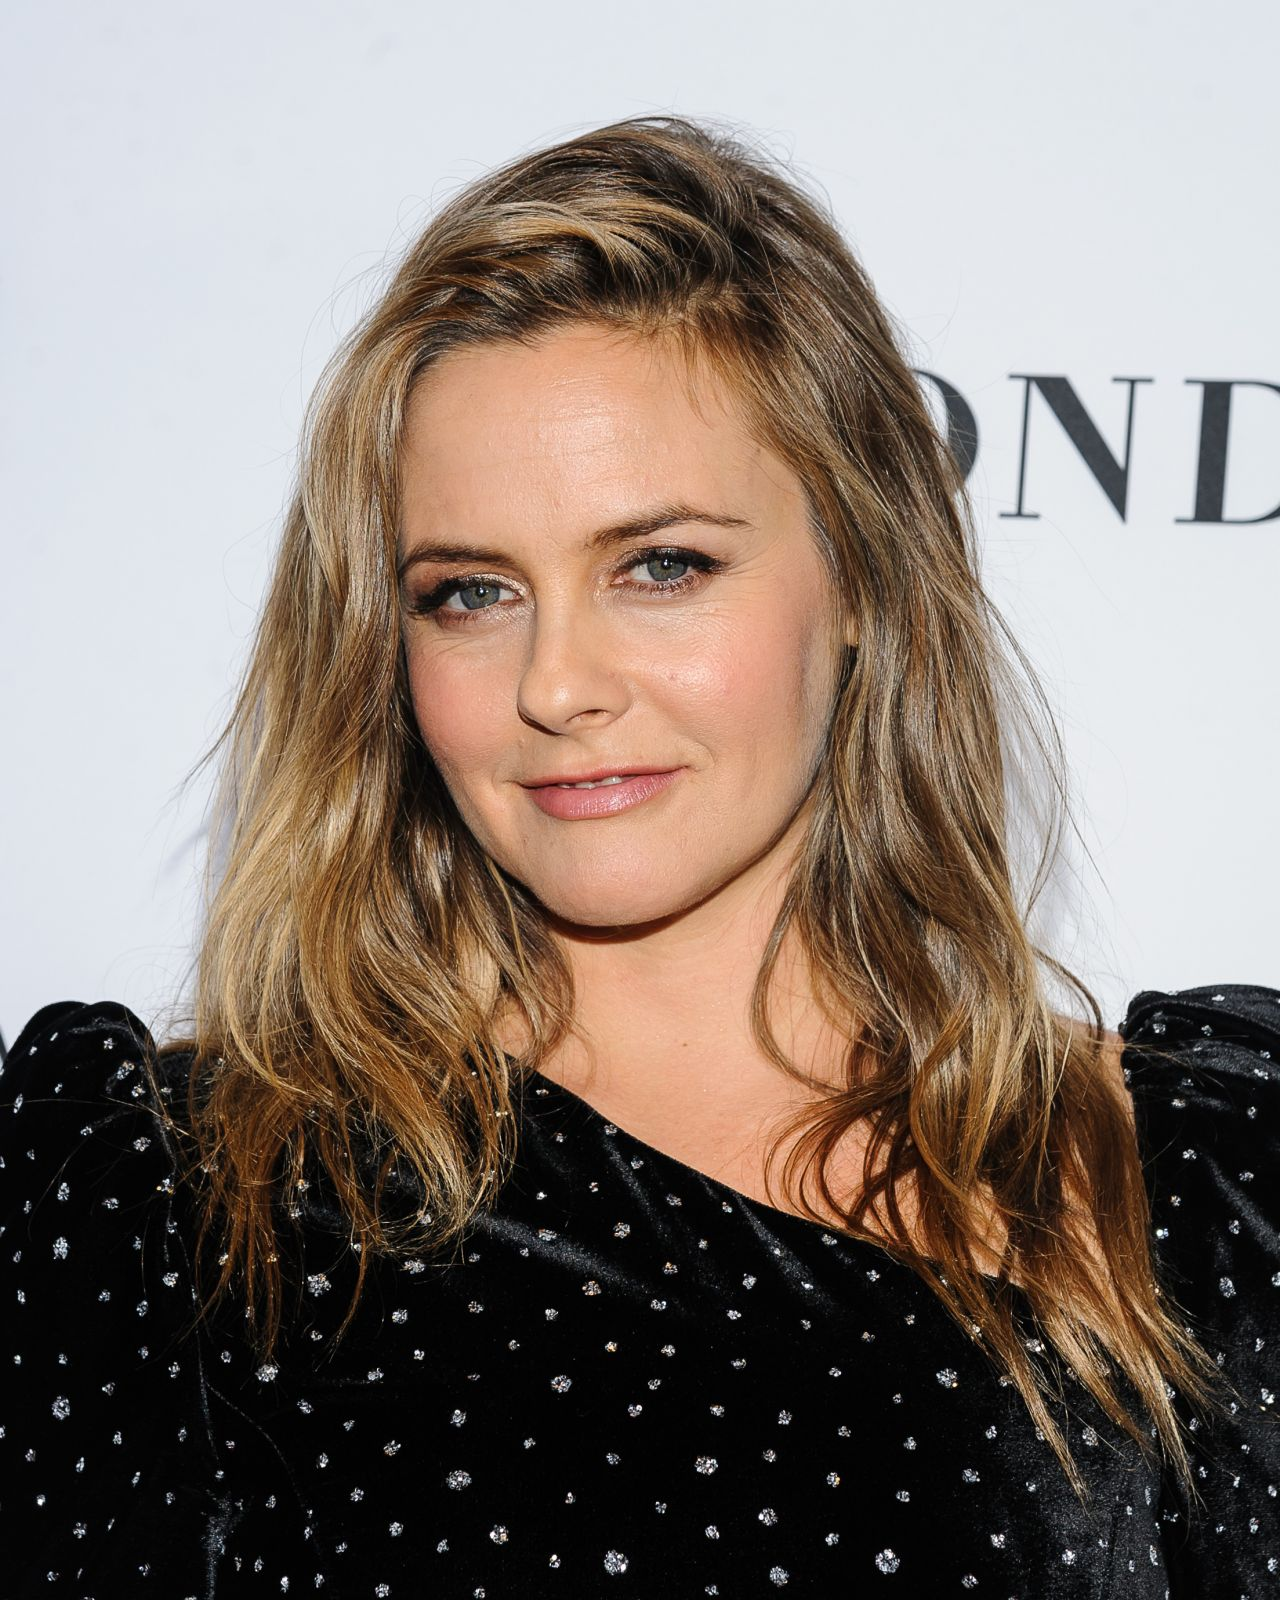 Selfie Alicia Silverstone  naked (71 pics), Snapchat, swimsuit